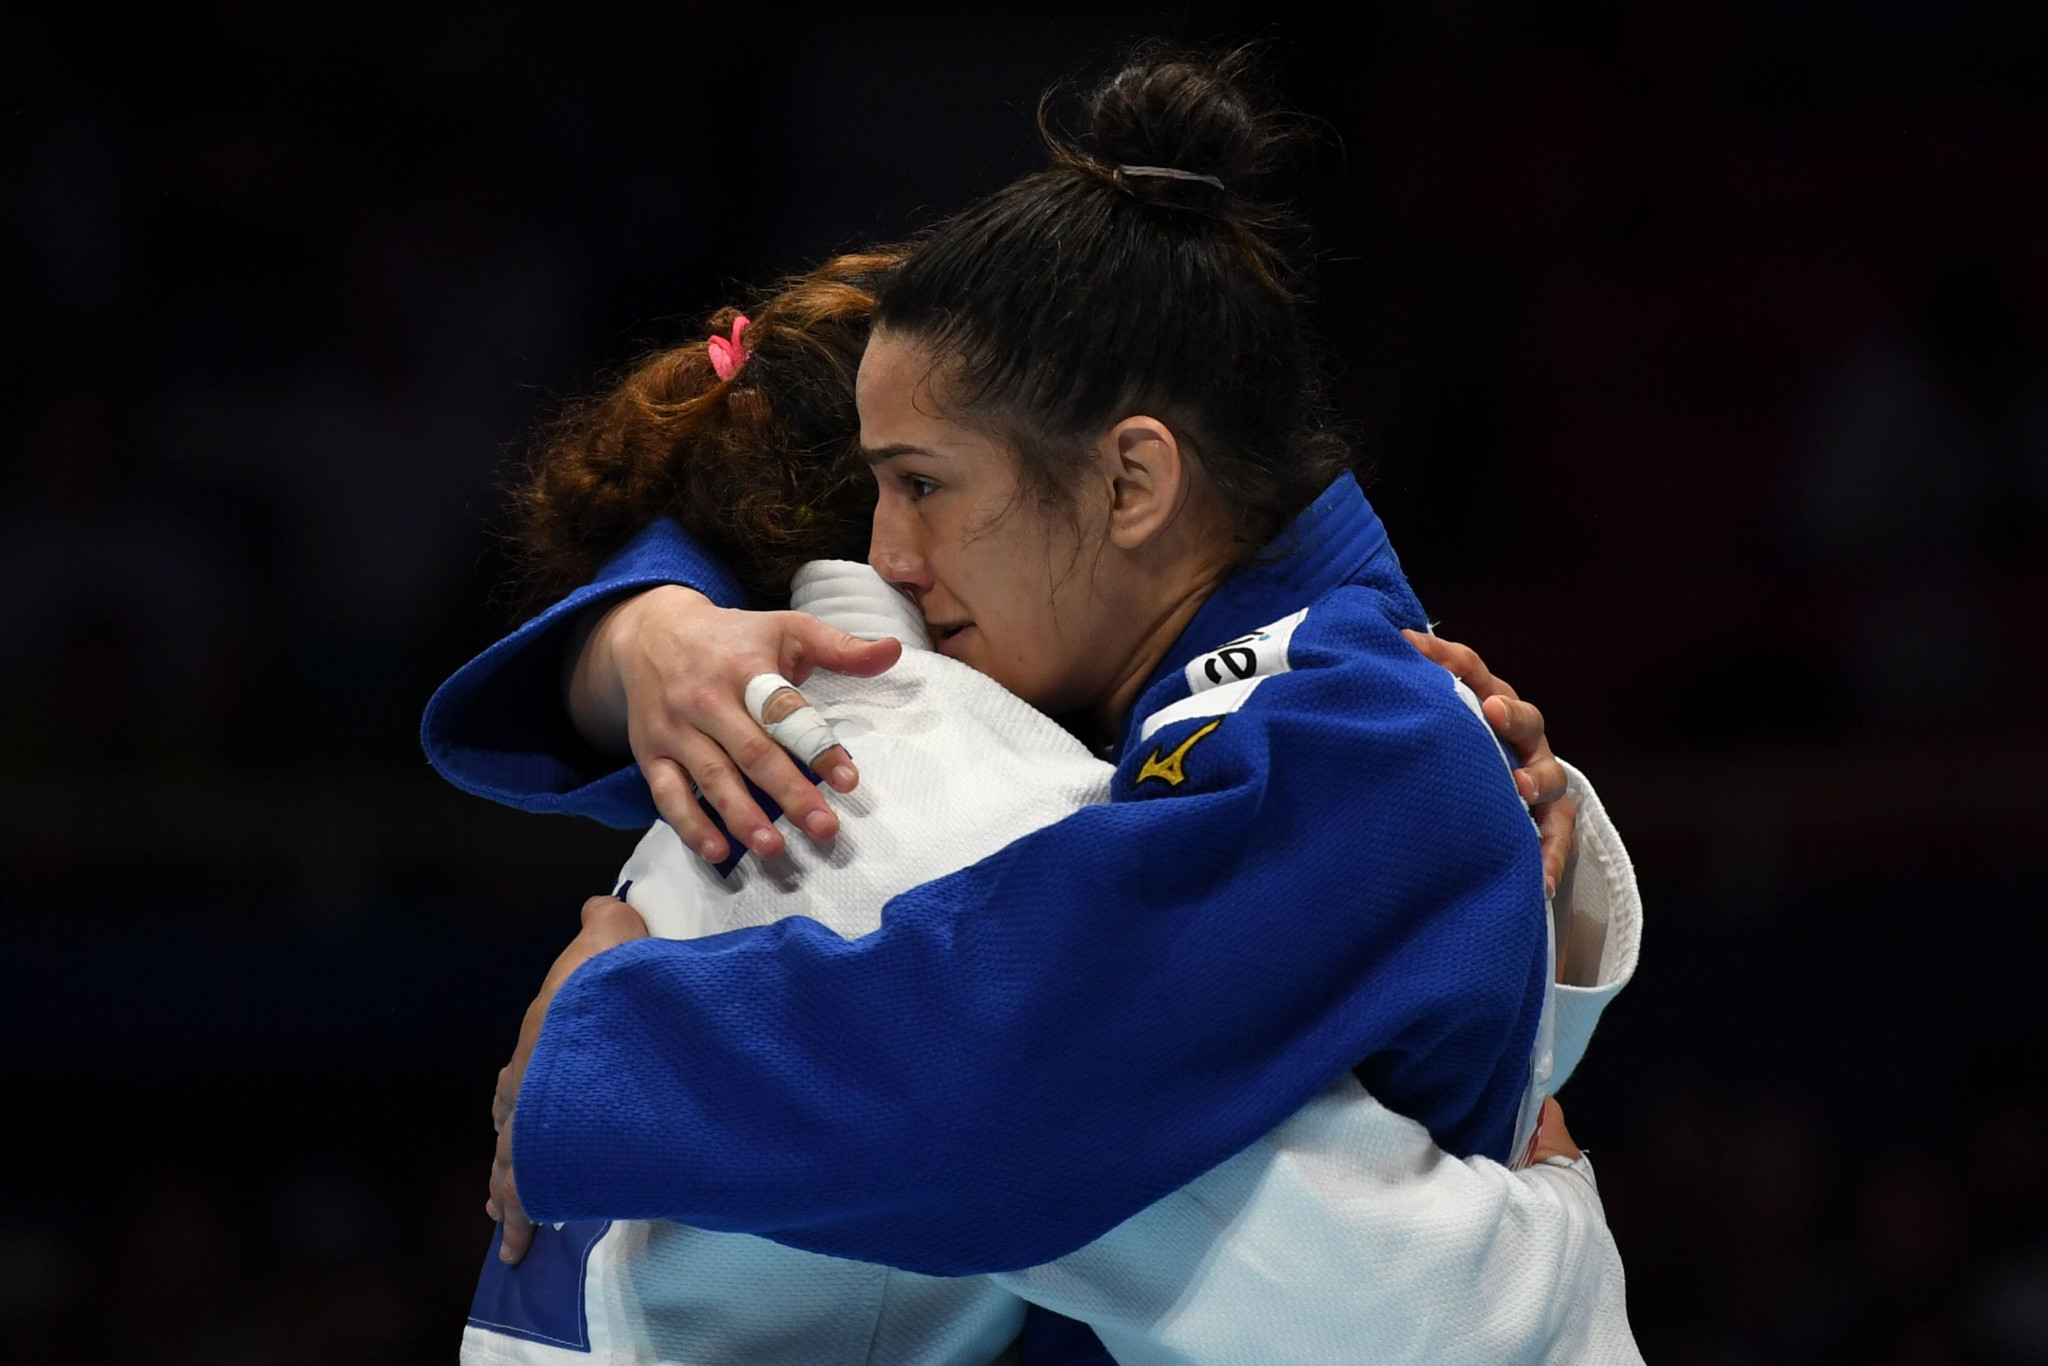 Mayra Aguiar of Brazil, in blue, hugs Patricia Sampaio of Portugal after winning bronze ©Getty Images